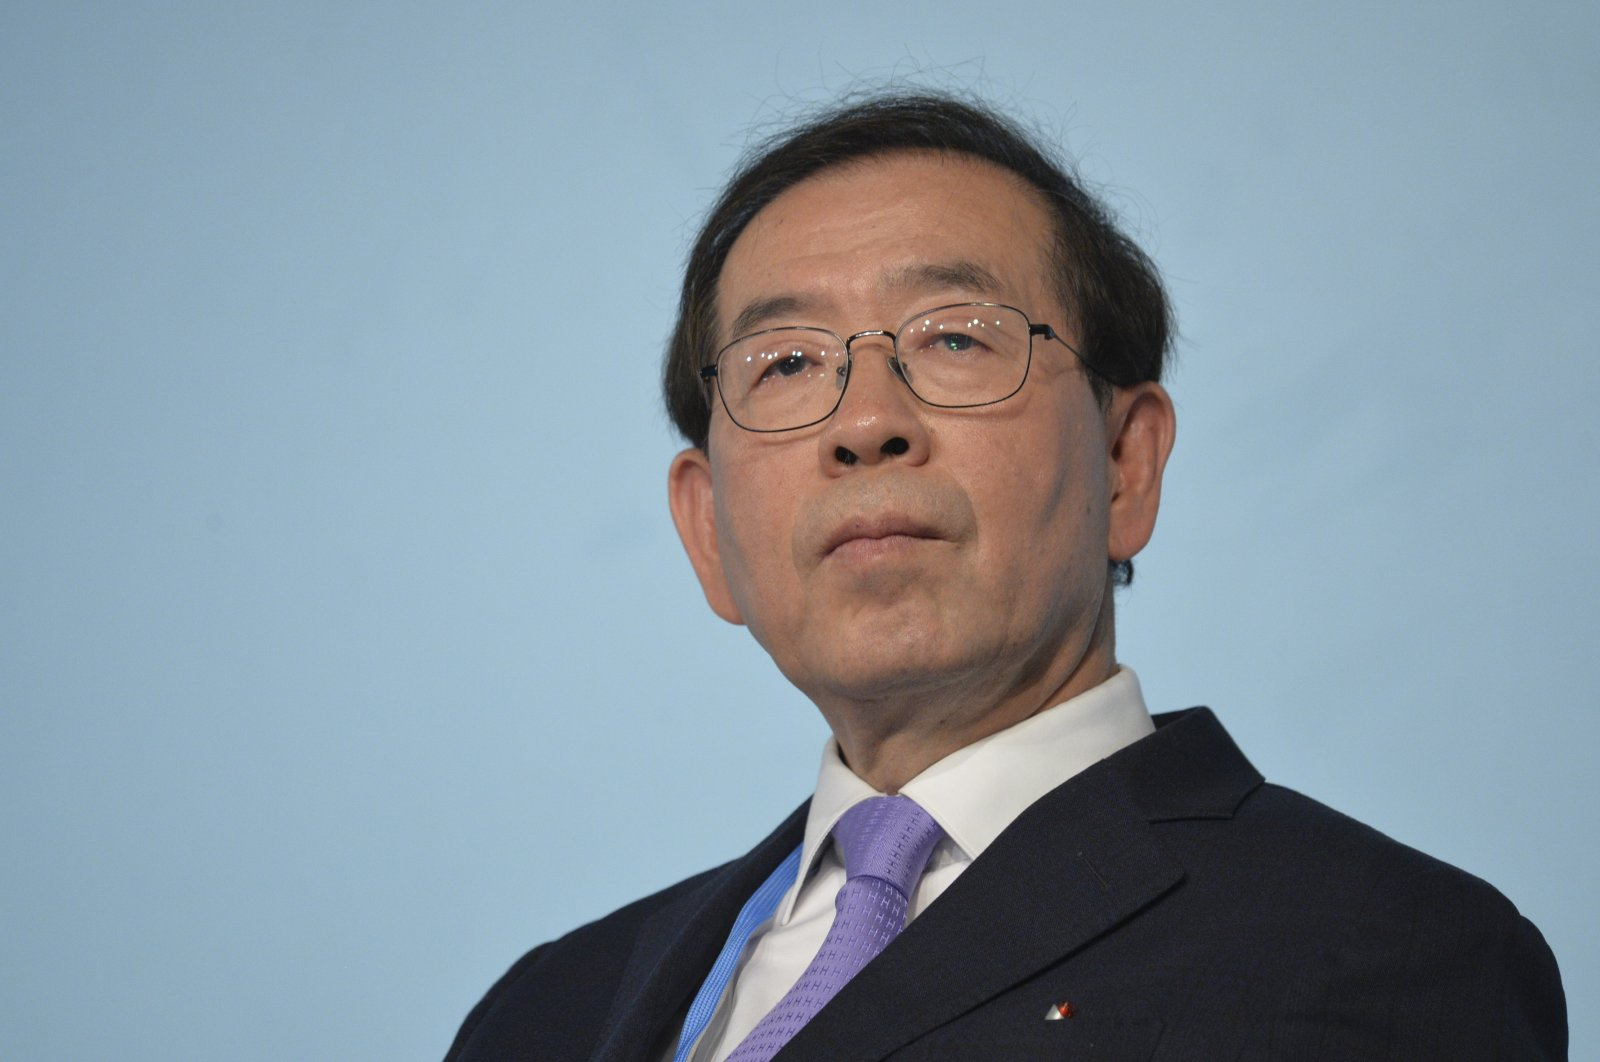 Park Won-soon, mayor of Seoul, attends a panel discussion during the U.N. Climate Change Conference COP23 in Bonn, Germany, Nov. 13, 2017. (EPA File Photo)